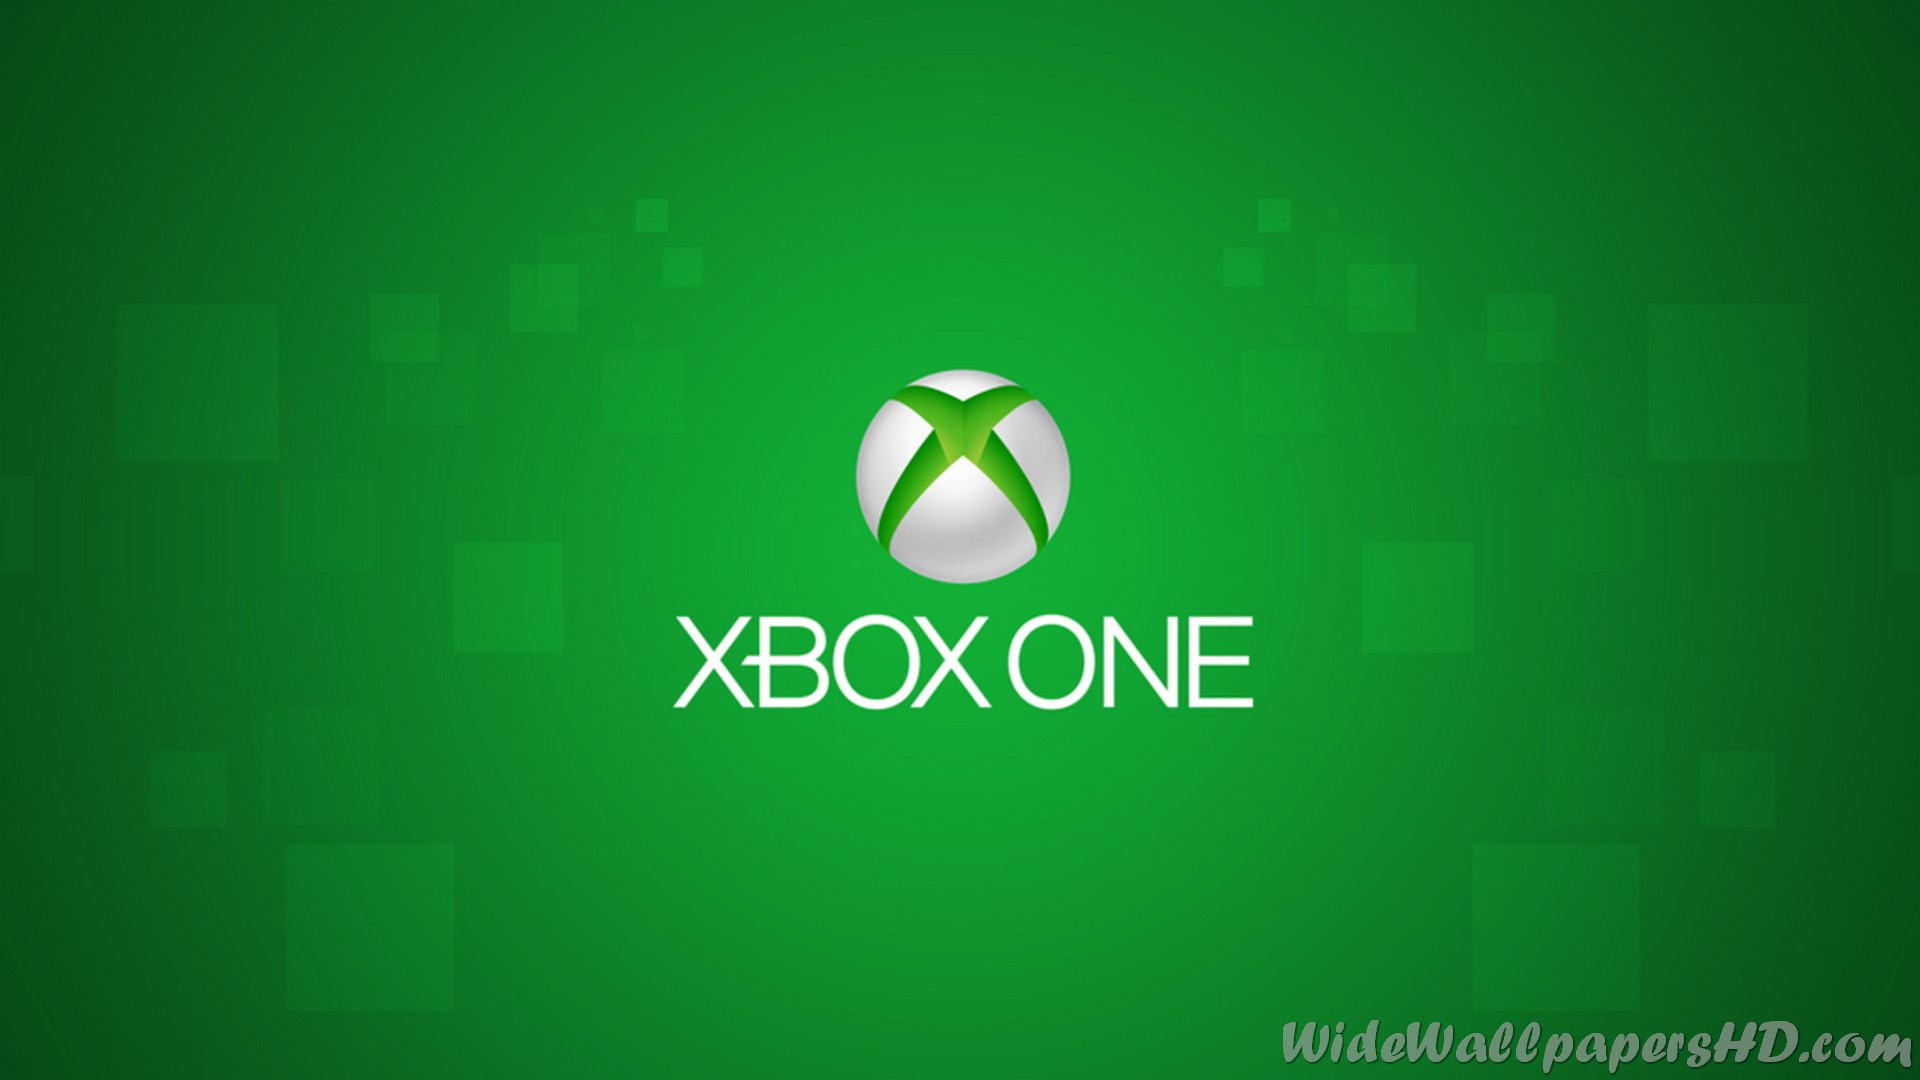 T Luvj as well Ciuv in addition  in addition Controller Black X together with Xbox Logo Wallpaper X Desktop. on xbox 360 controller wallpaper